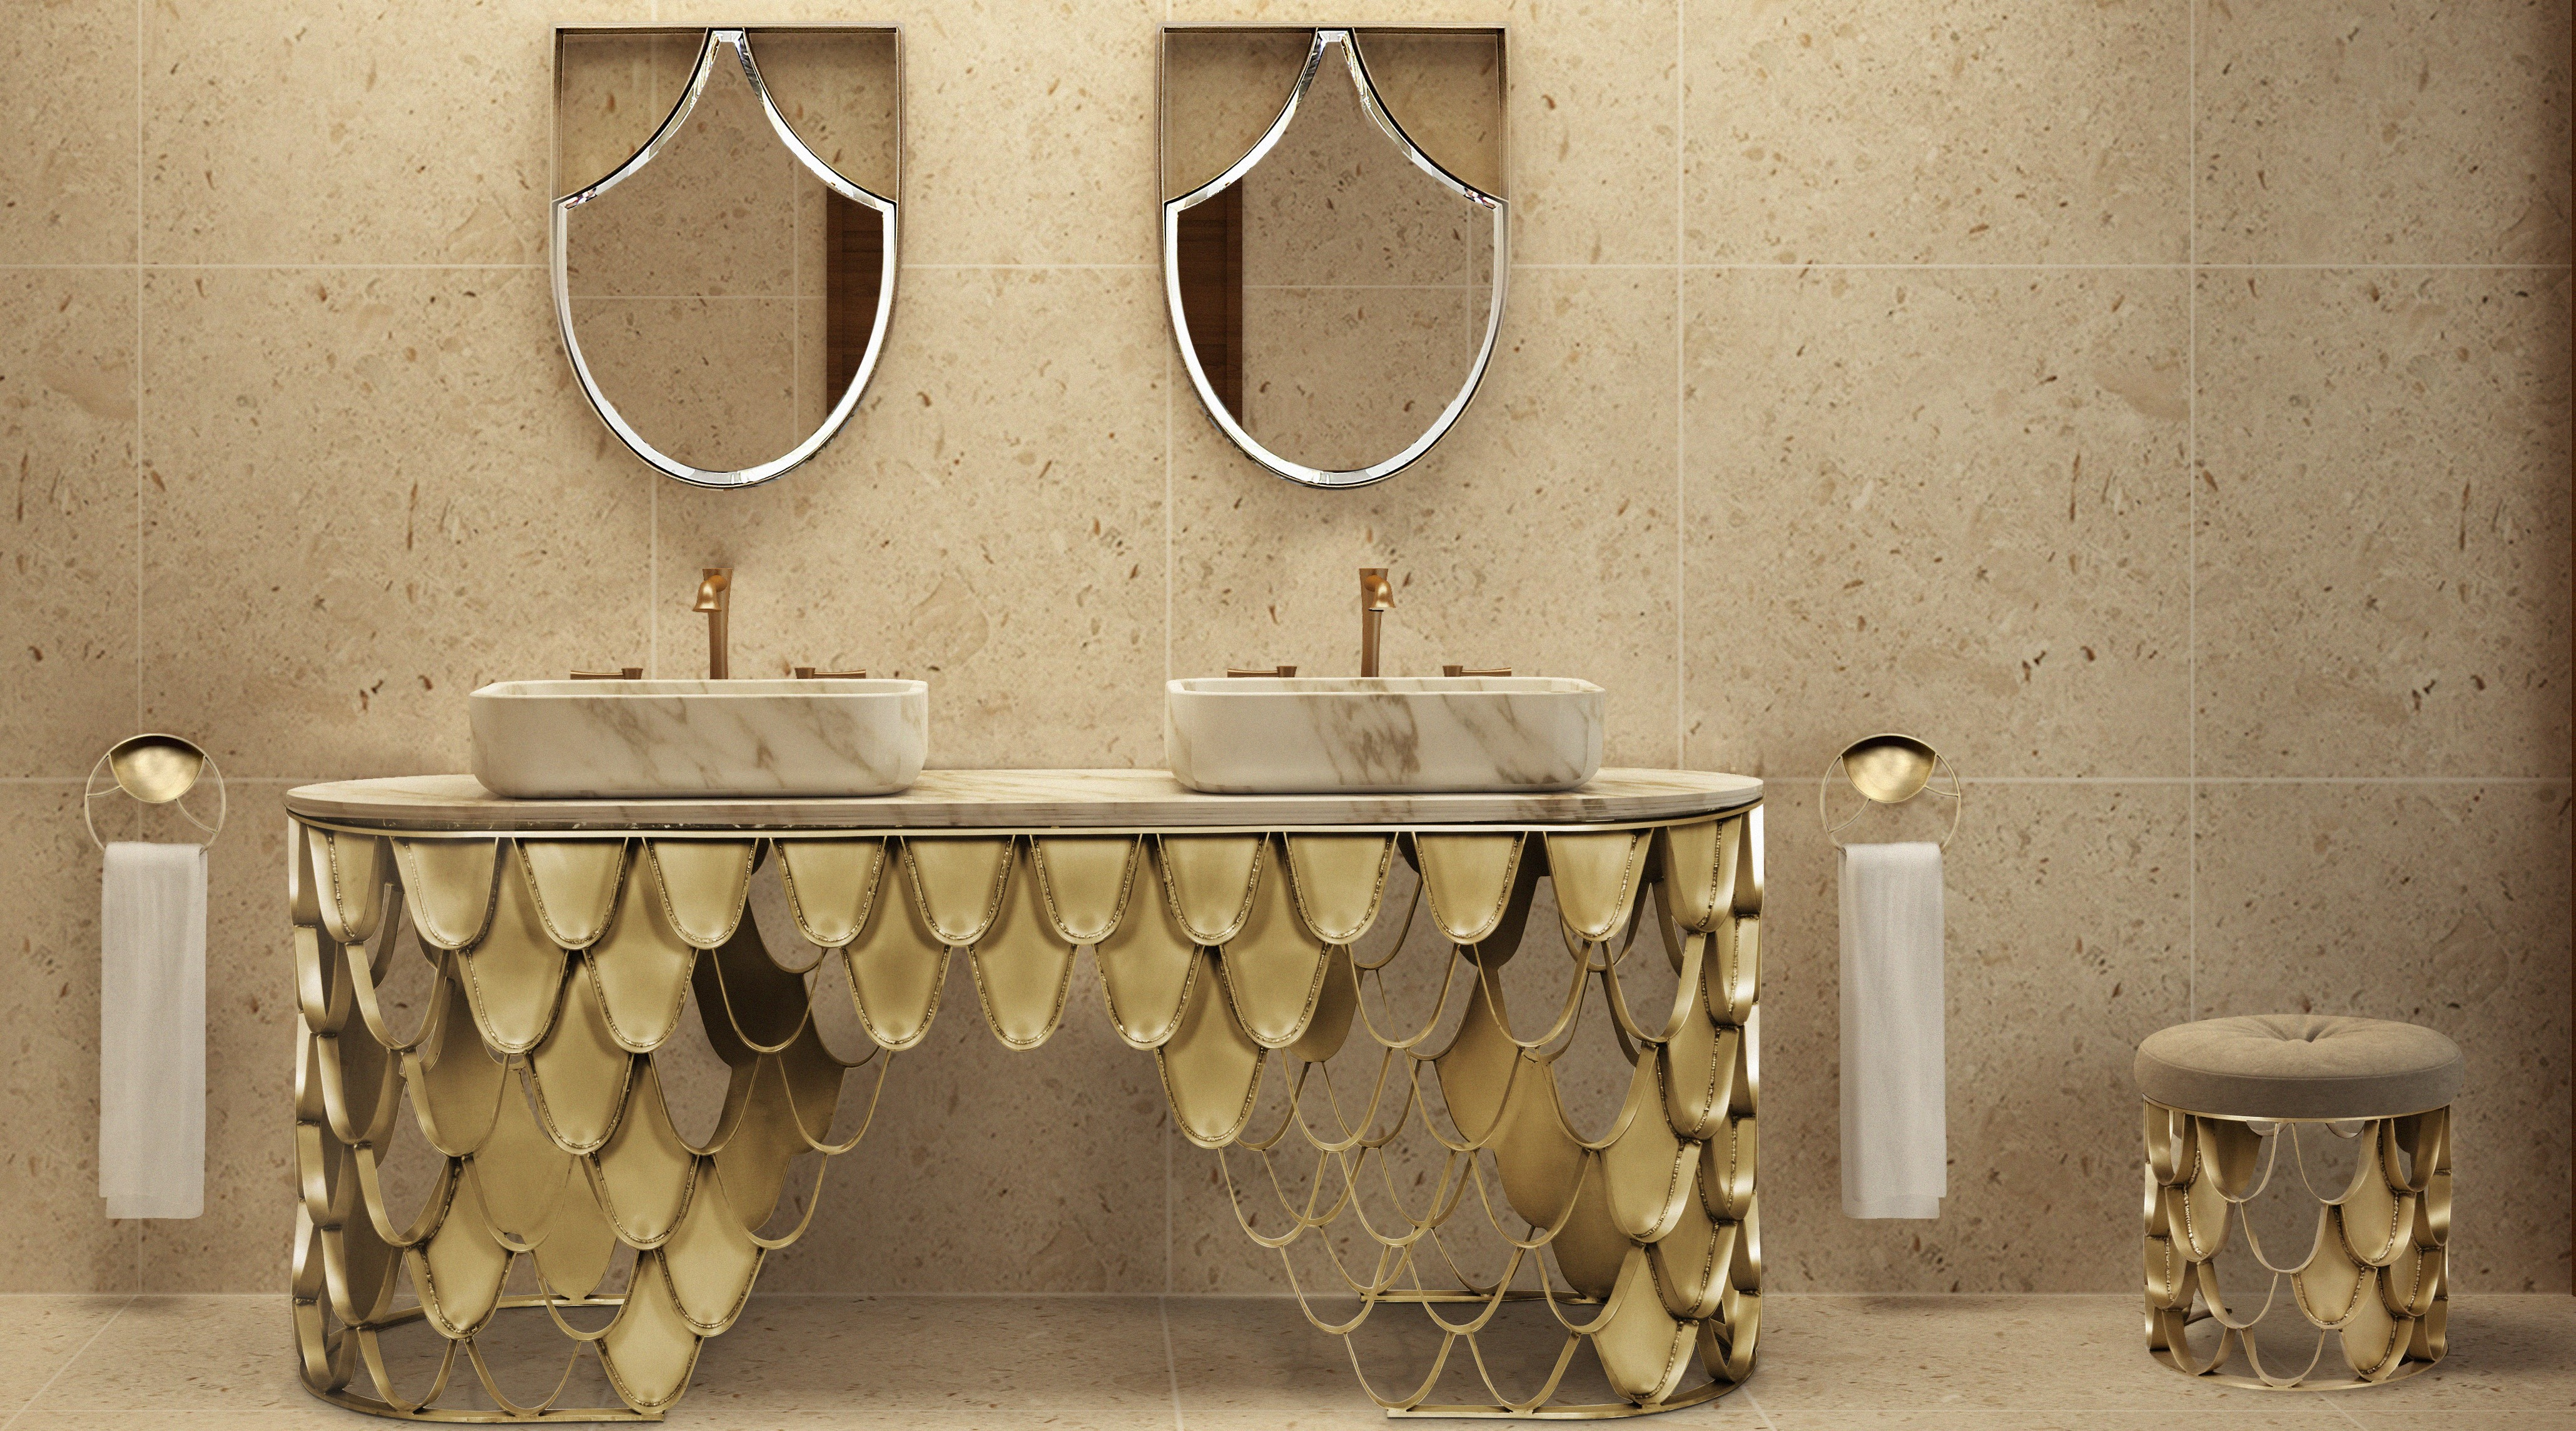 marble elements of Best Modern Bathroom Inspirations